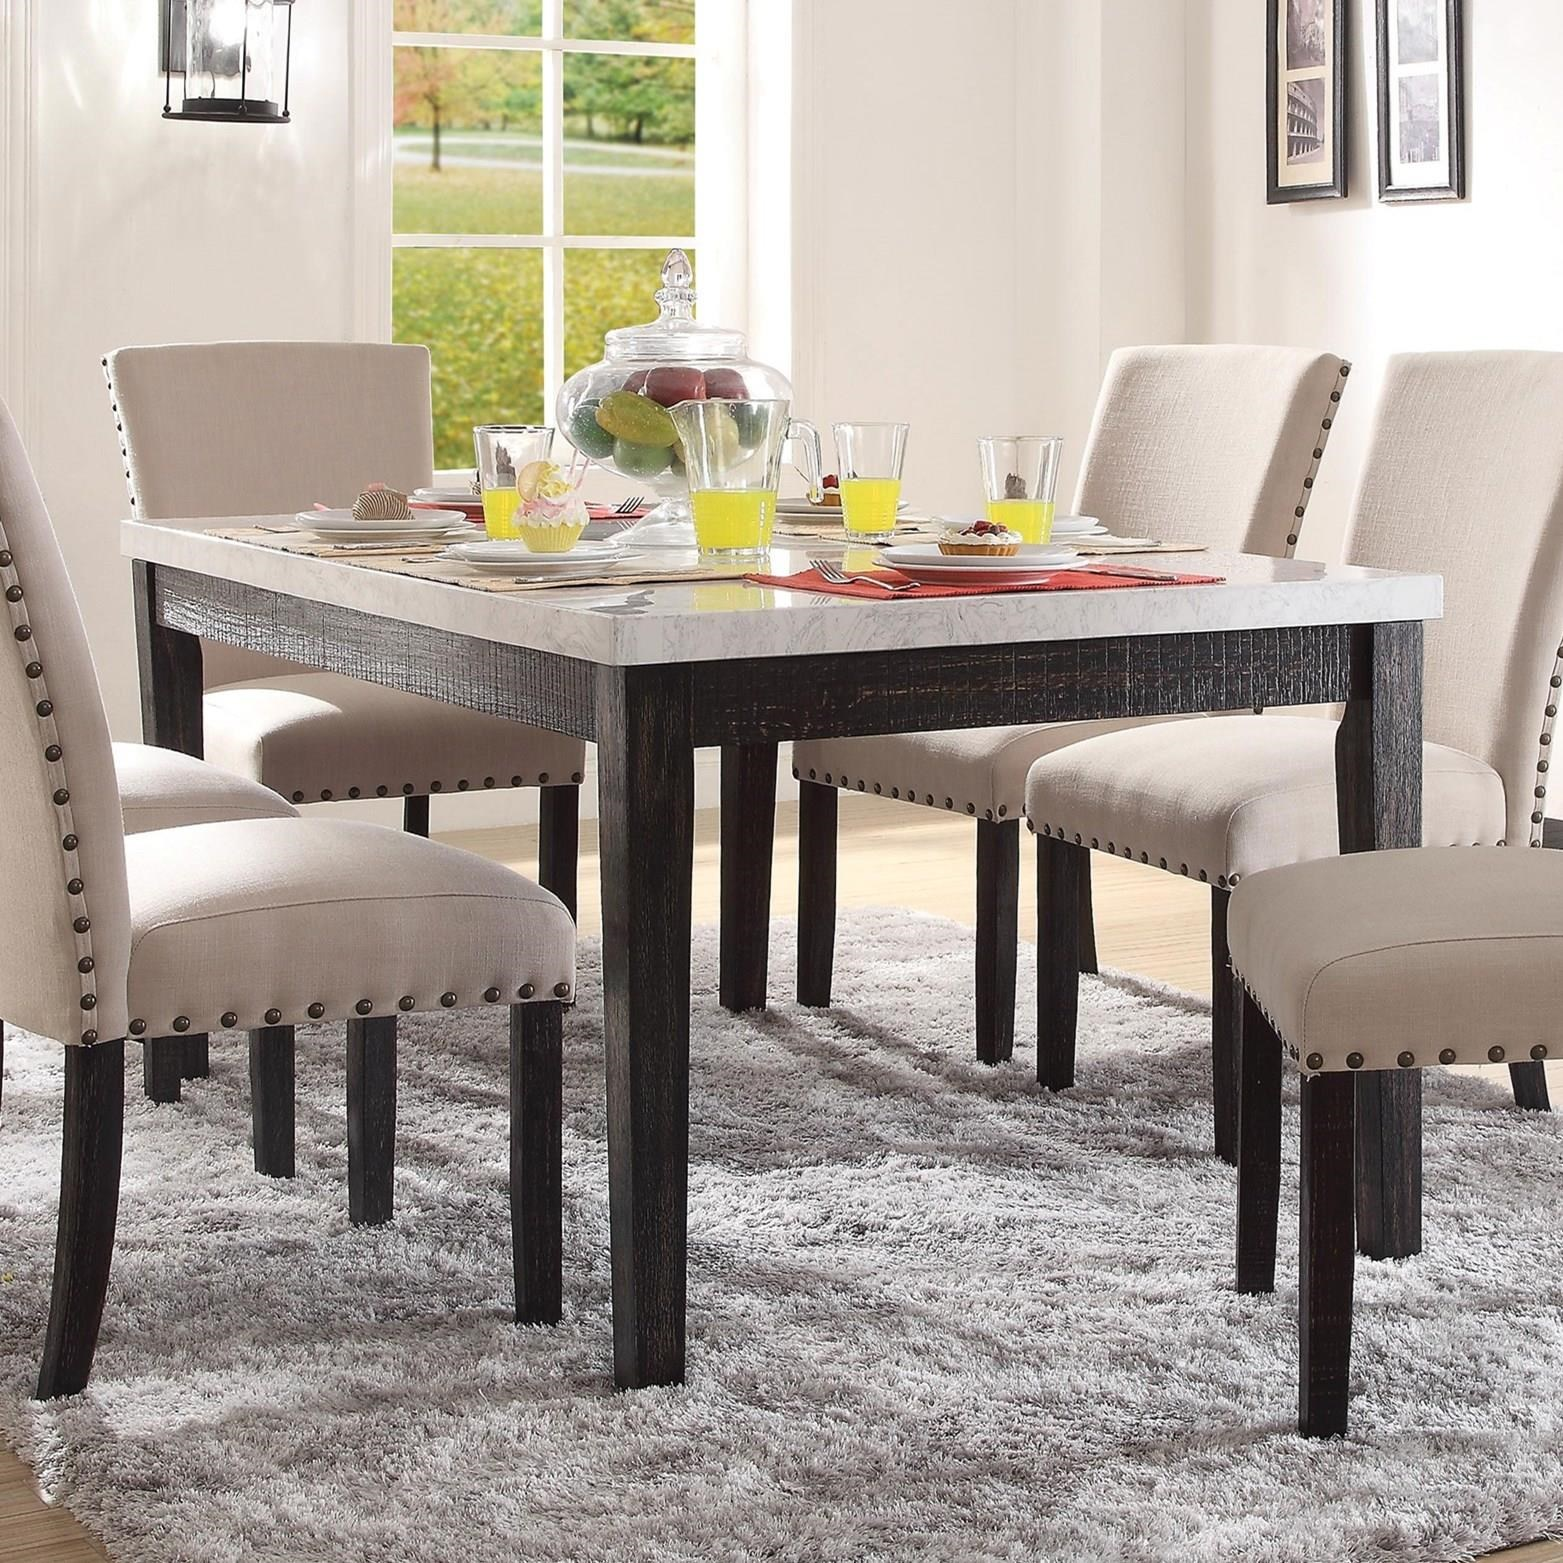 Acme Furniture Nolan 72850 Rectangular Dining Table With White Marble Top Del Sol Furniture Dining Tables